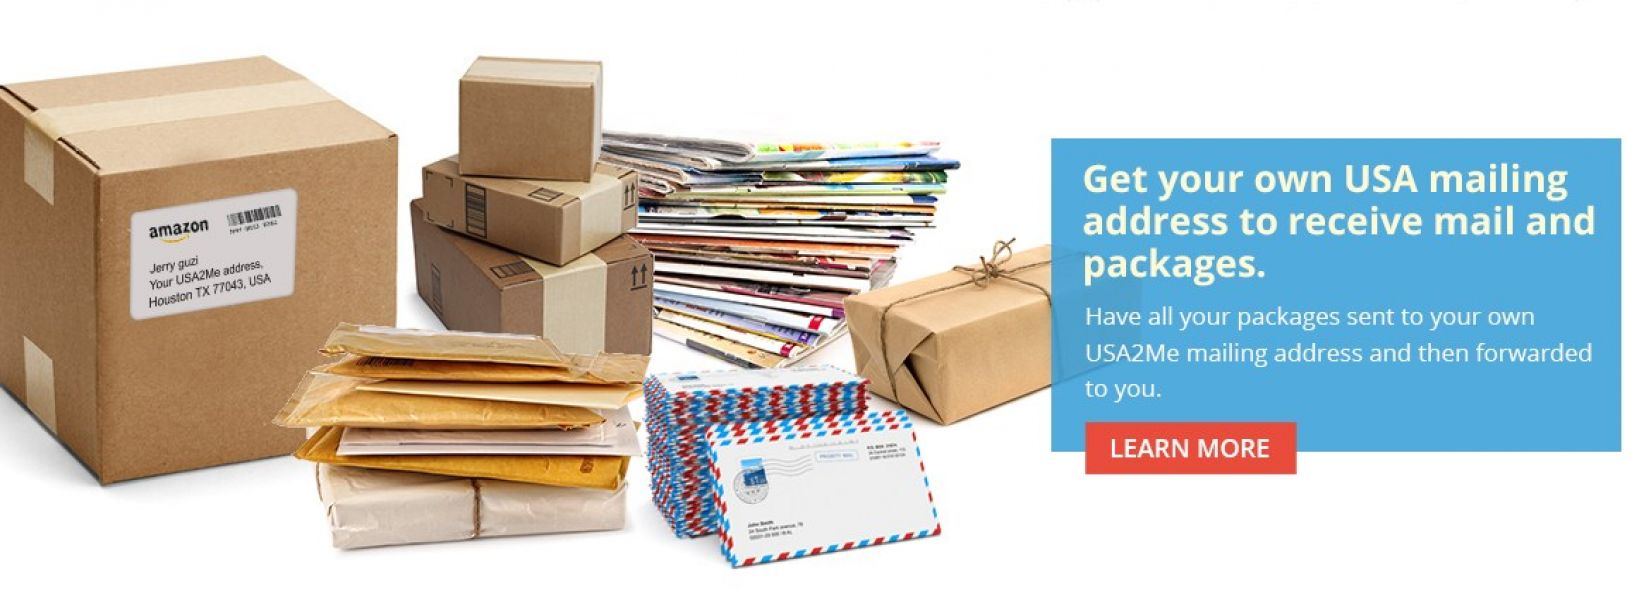 US Mail Service and Package Forwarding Services | USA2ME